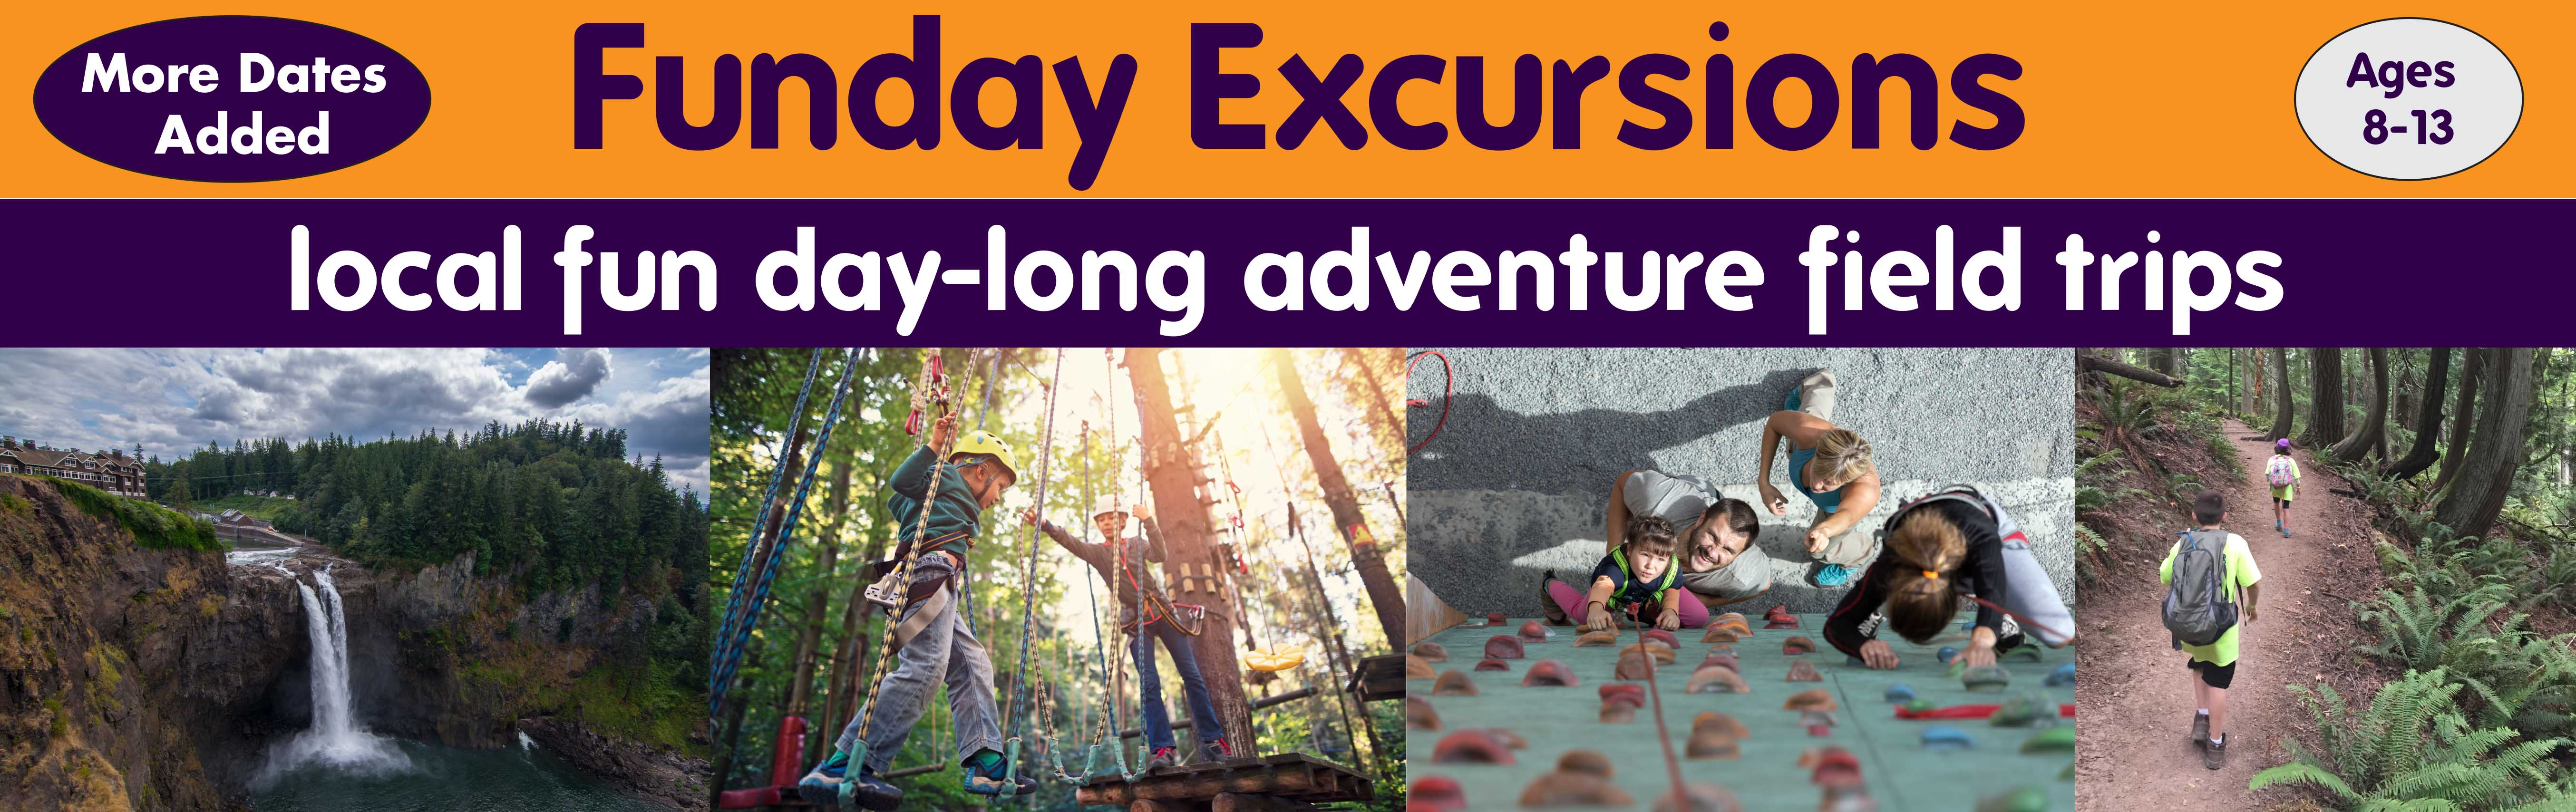 Funday Excursions_copy1